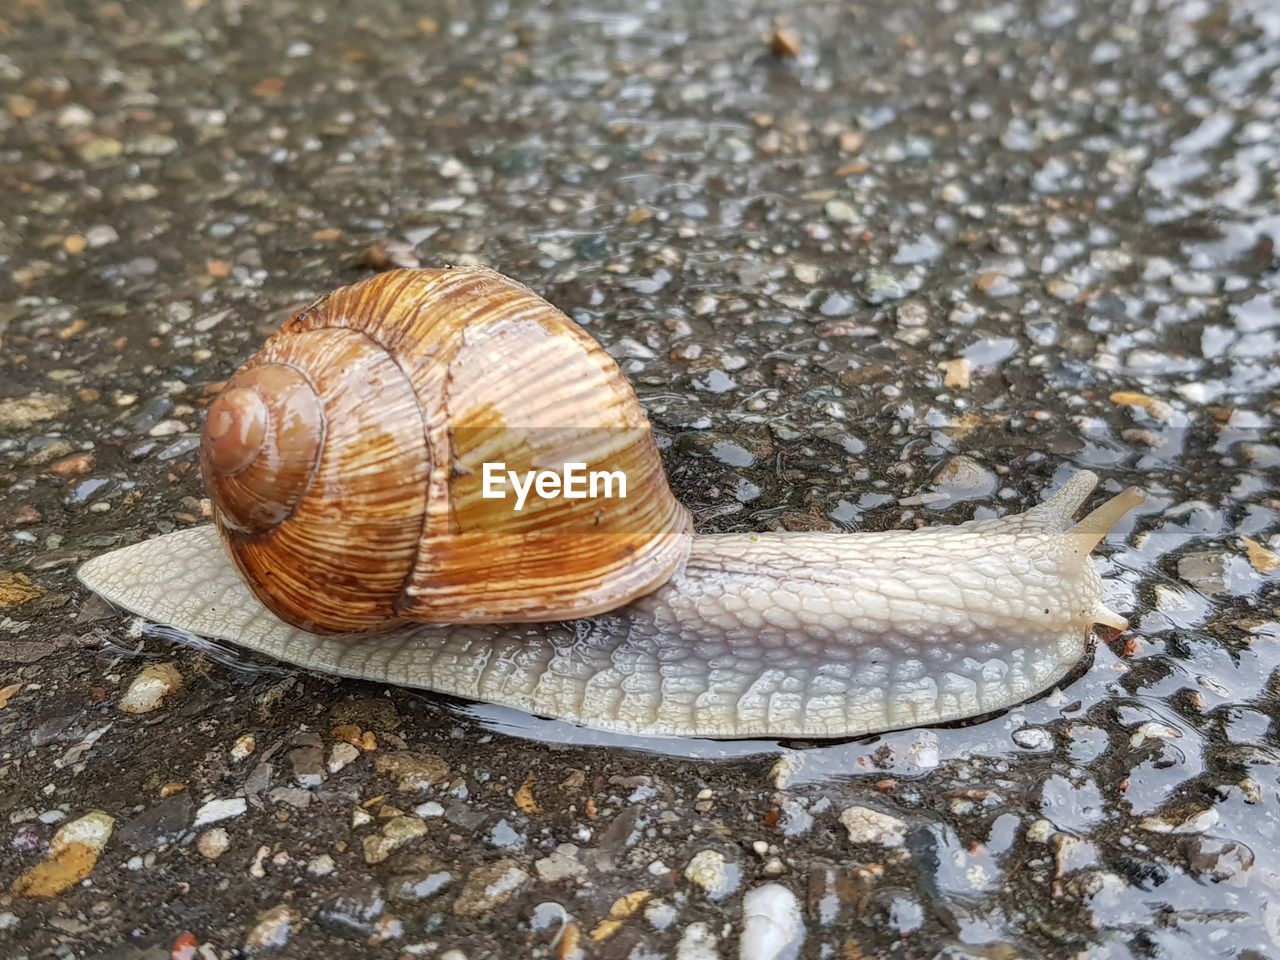 animal, animal wildlife, animal themes, shell, one animal, mollusk, animal shell, invertebrate, animals in the wild, gastropod, snail, no people, close-up, nature, day, high angle view, land, outdoors, wet, animal body part, crawling